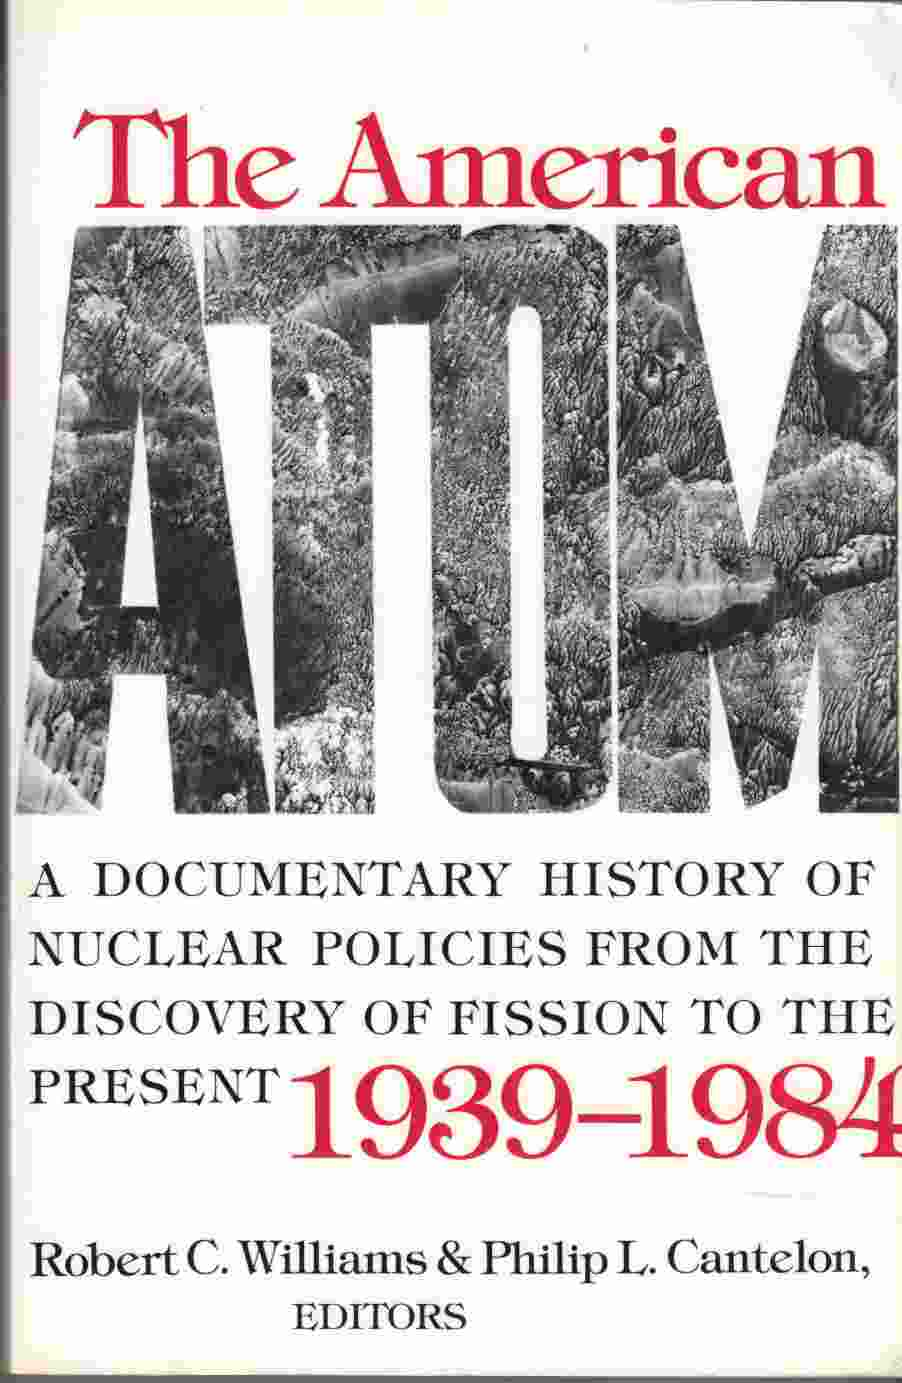 Image for The American Atom A Documentary History of Nuclear Policies from the Discovery of Fission to the Present 1939 - 1984